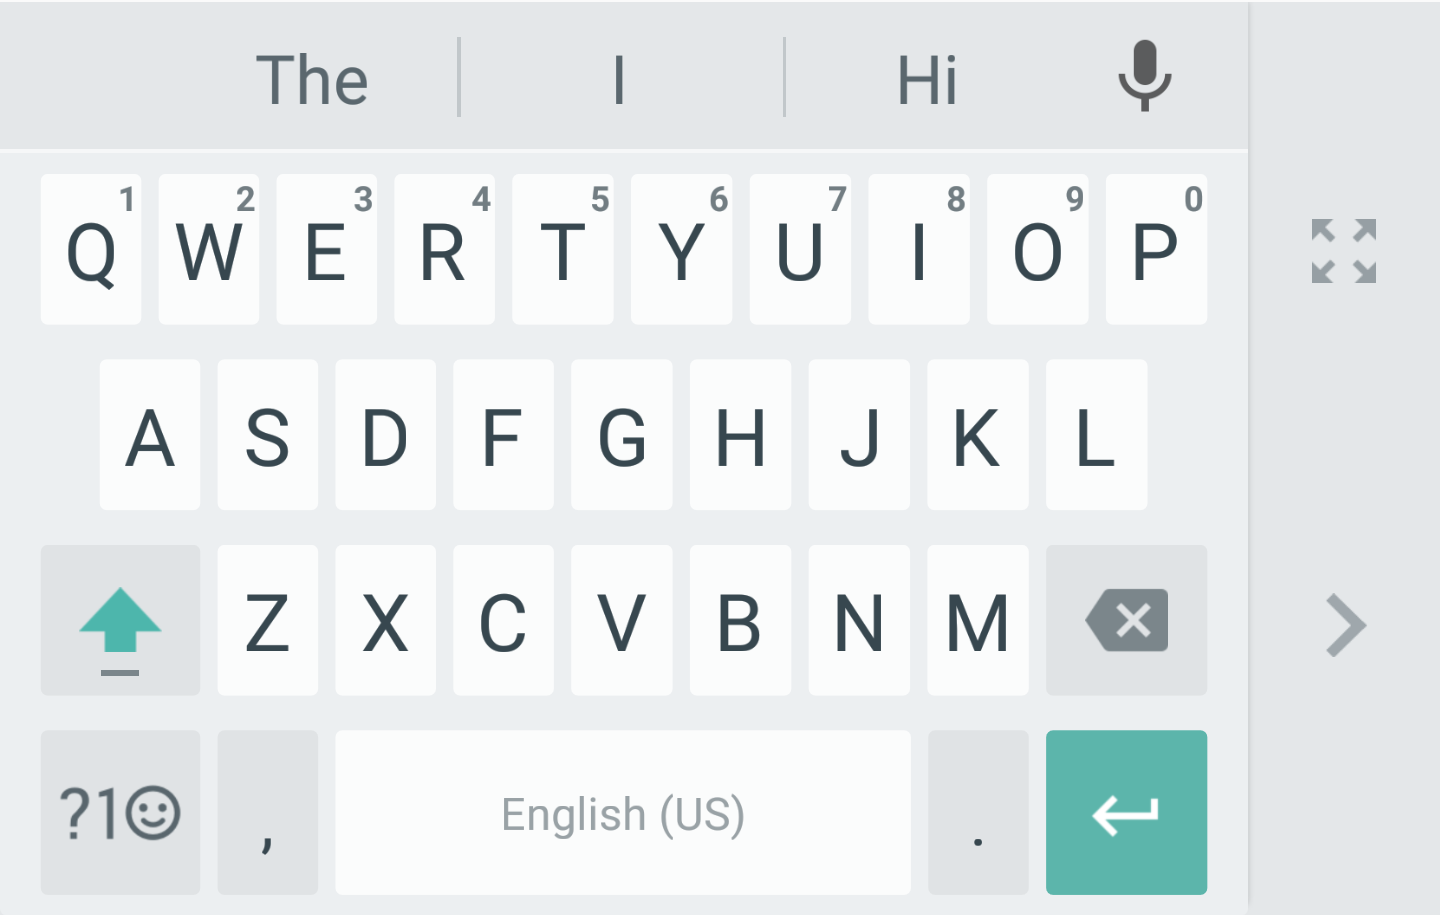 Google keyboard gets a huge update to v50 with one handed mode keyboard apps arent the most exciting things but theyre one of the apps you interact with most on your phone think about how much you type biocorpaavc Choice Image